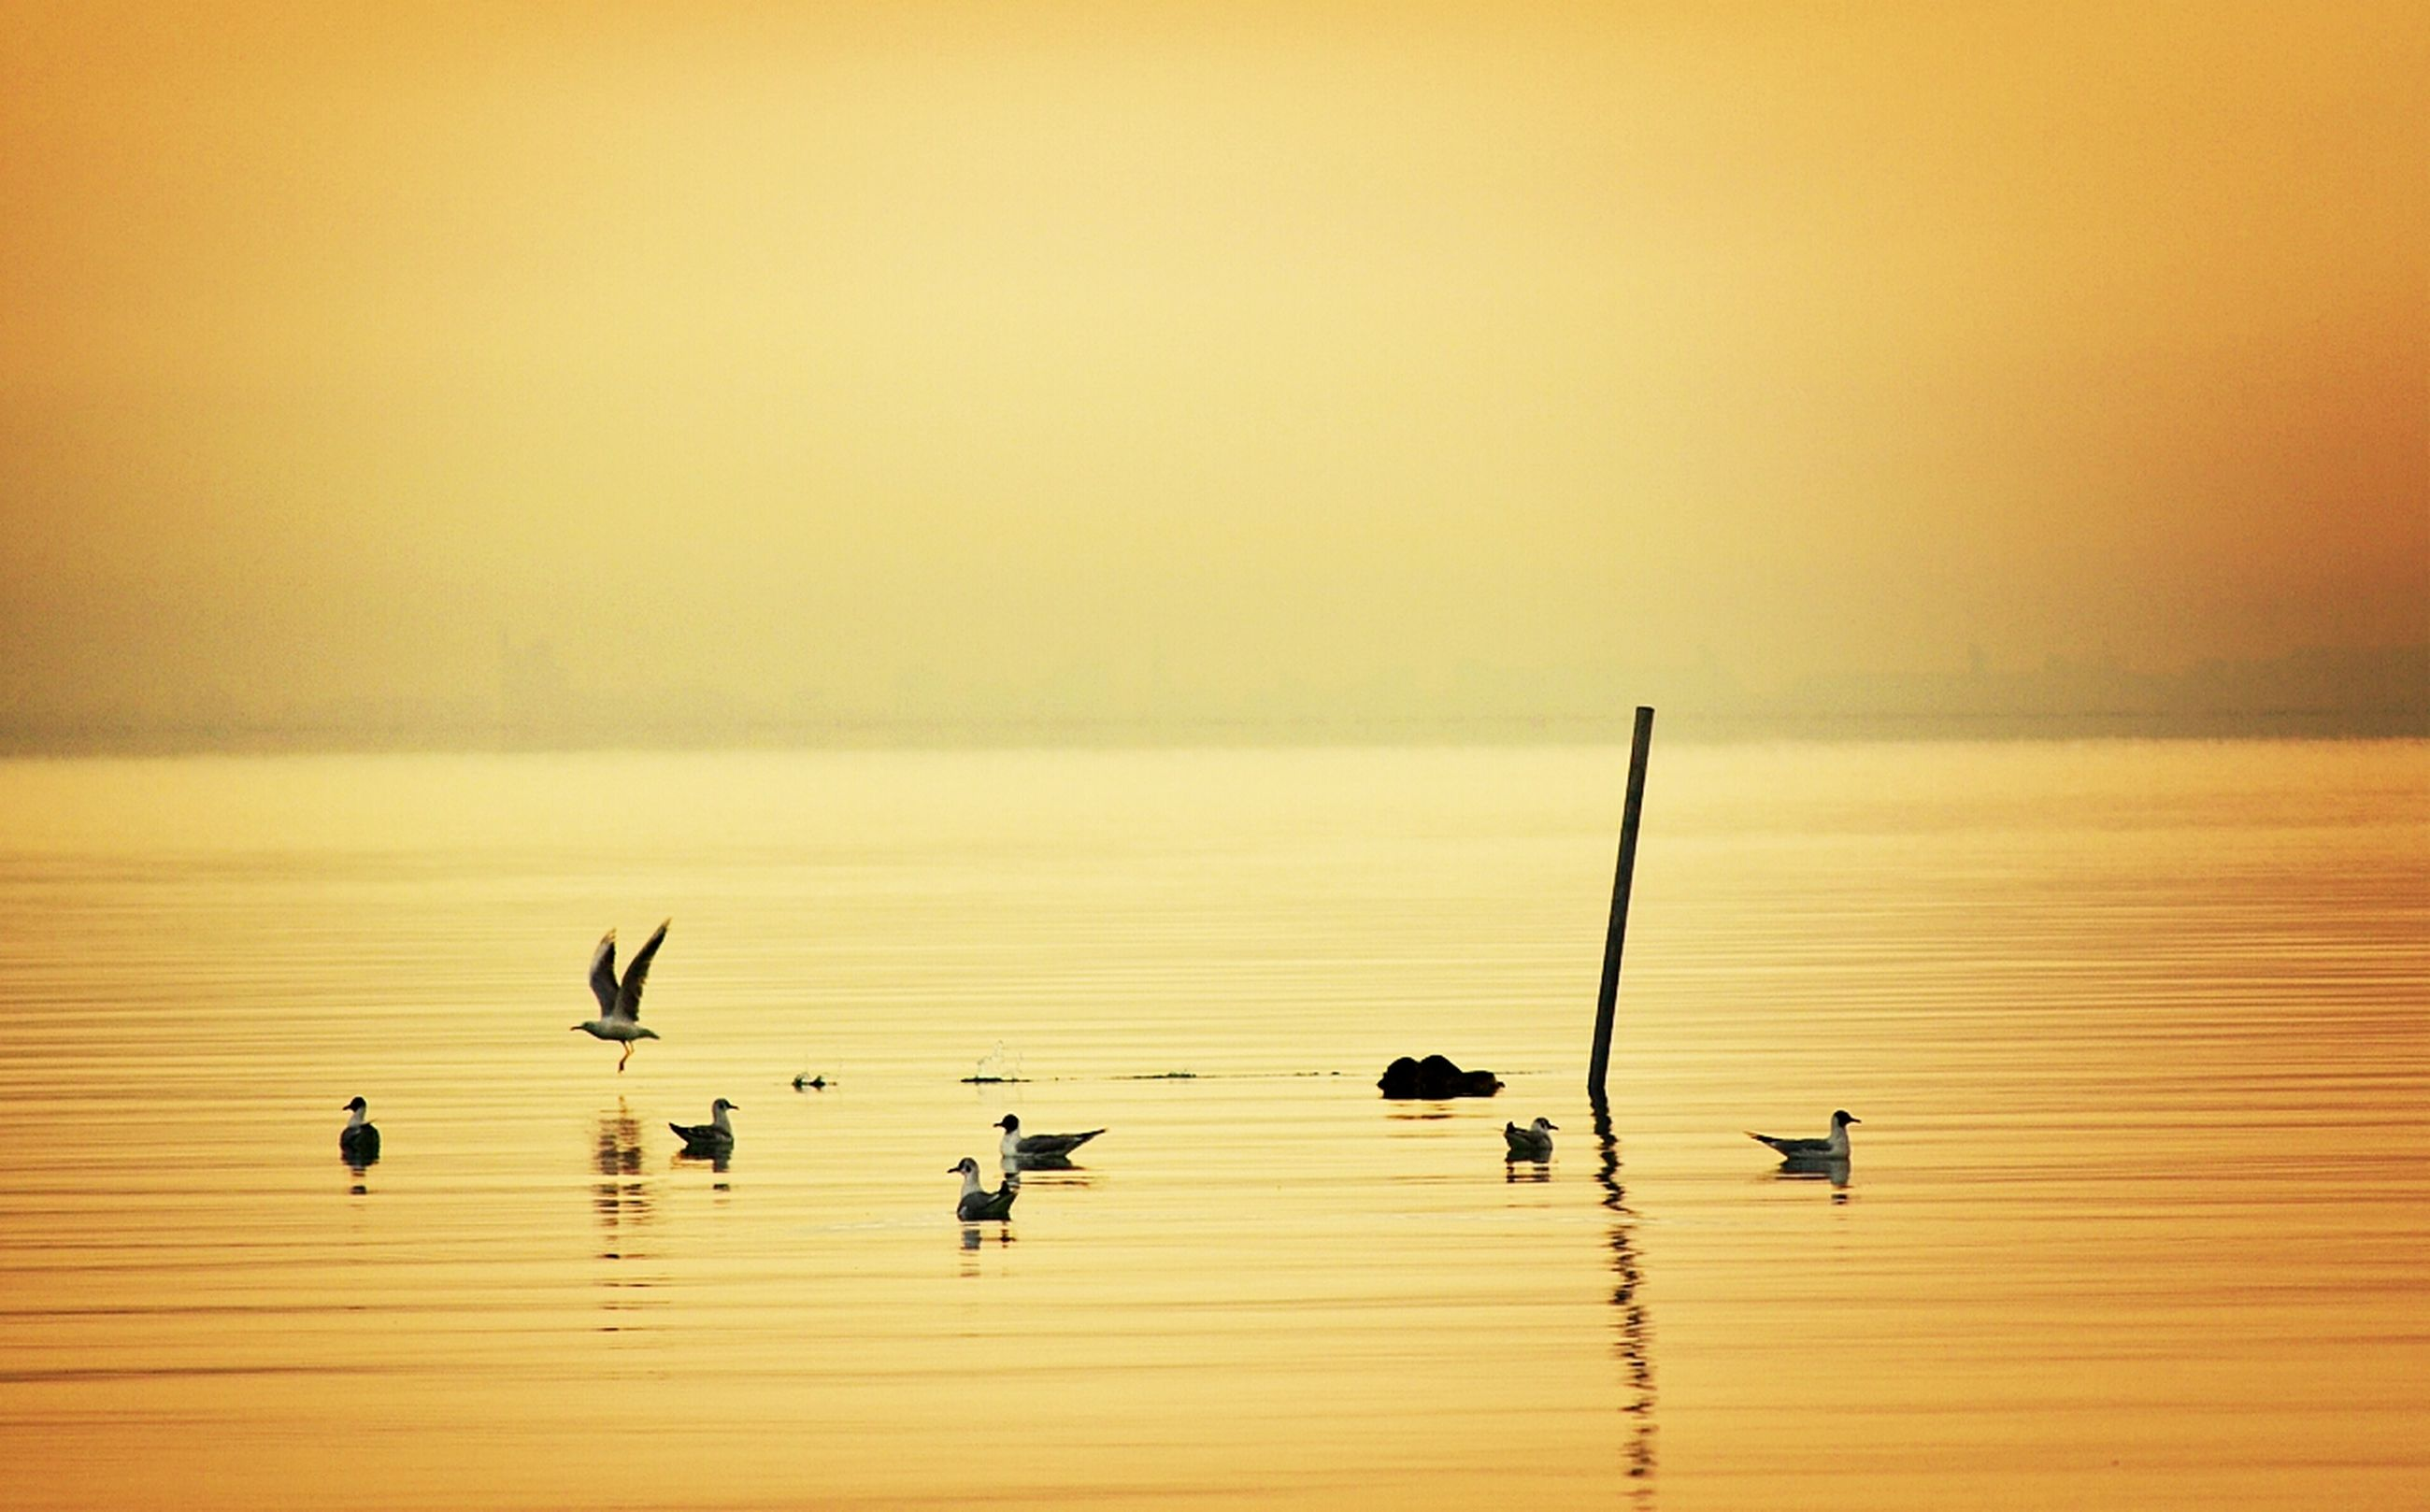 bird, sunset, water, animal themes, wildlife, animals in the wild, reflection, beauty in nature, orange color, flock of birds, tranquil scene, waterfront, tranquility, nature, sea, scenics, copy space, horizon over water, clear sky